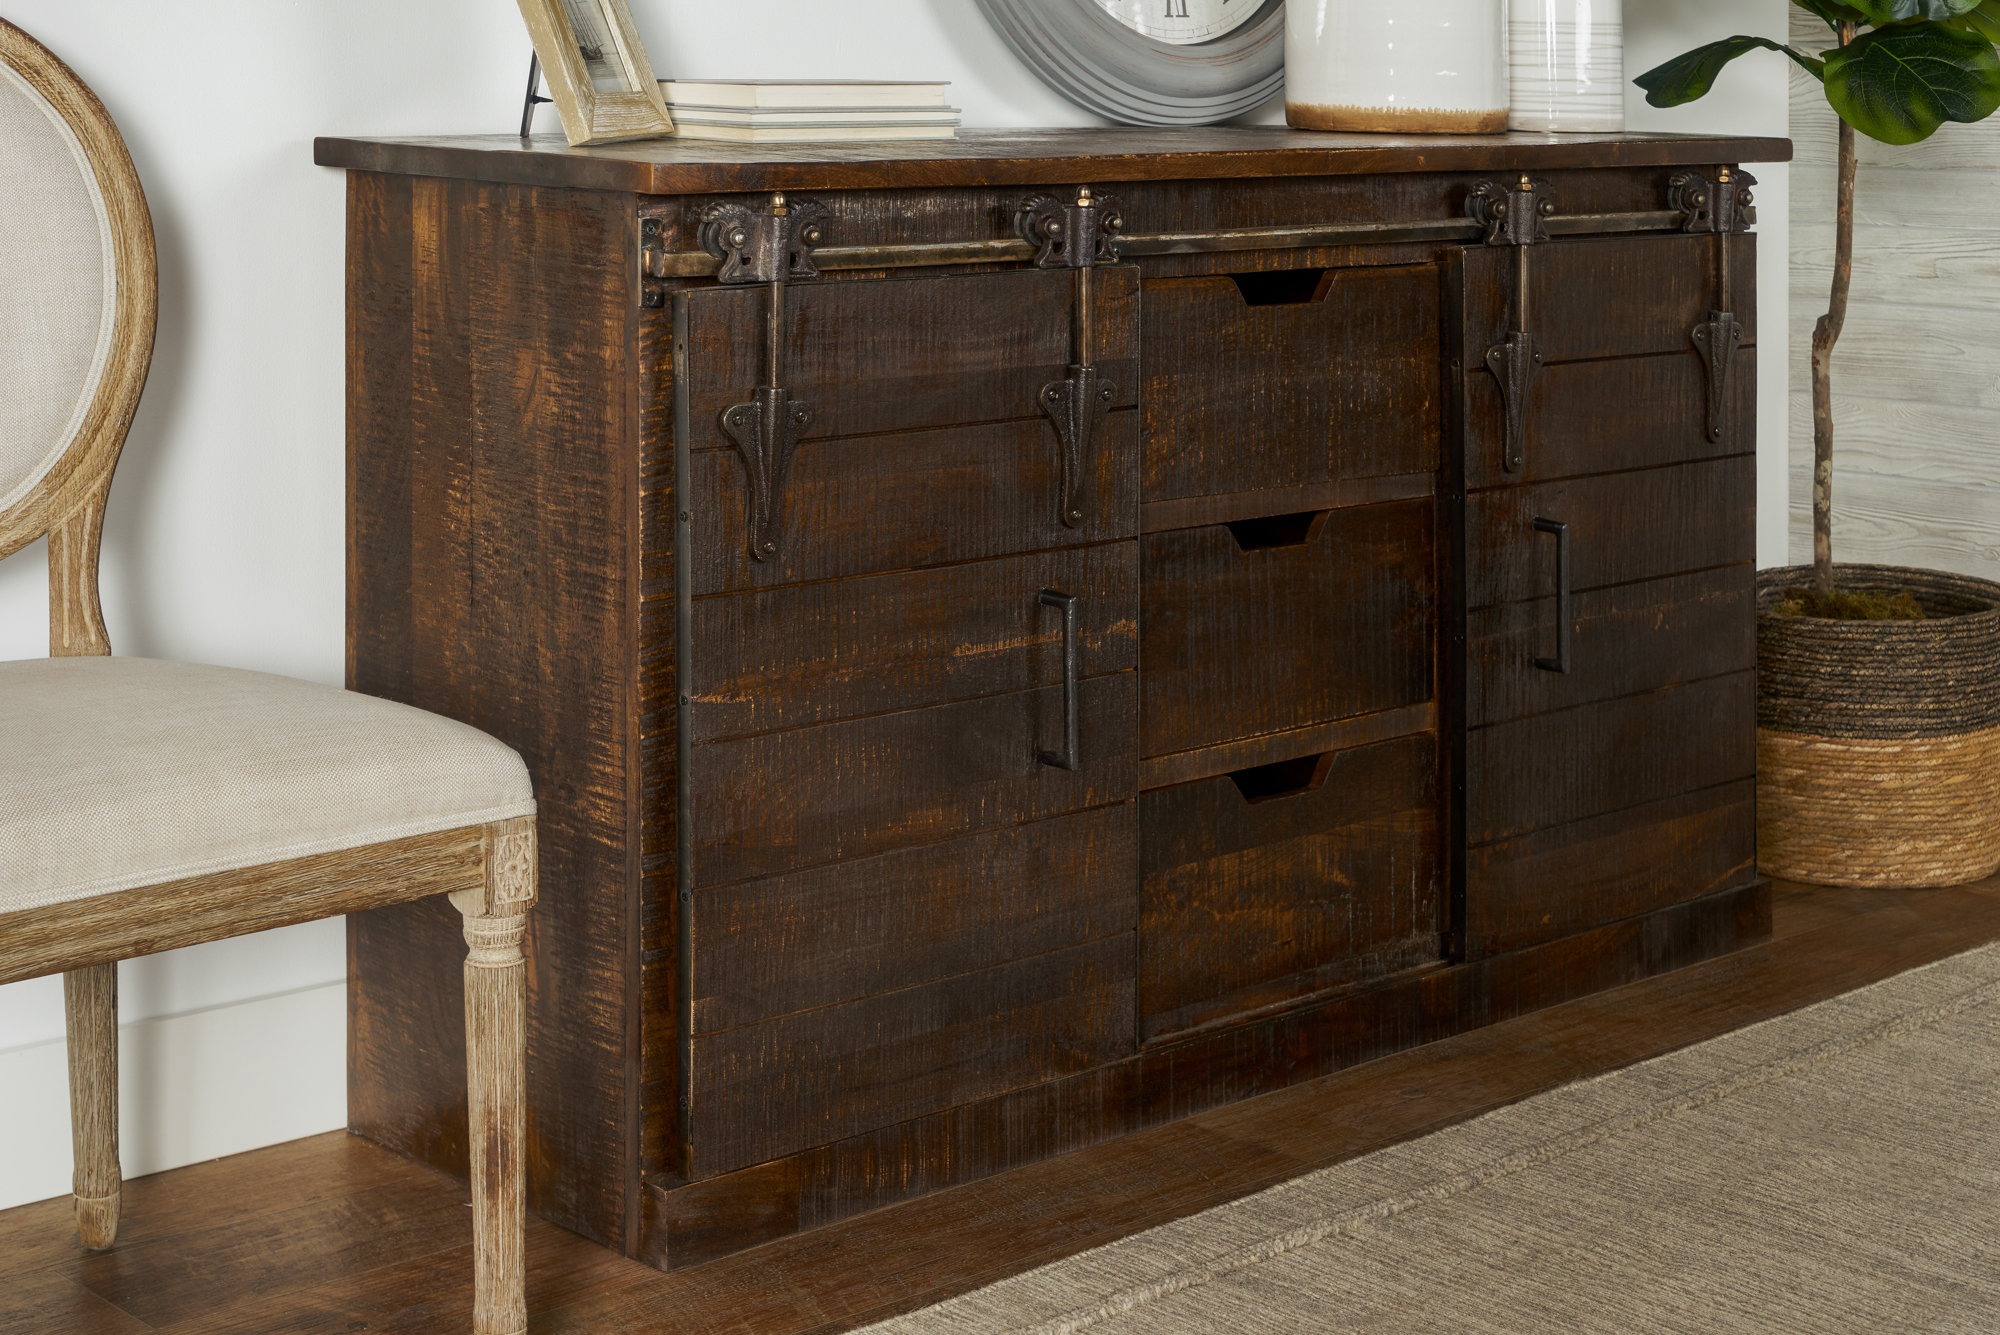 Industrial Sideboard / Credenza Sideboards & Buffets You'll Regarding Alegre Sideboards (View 17 of 20)